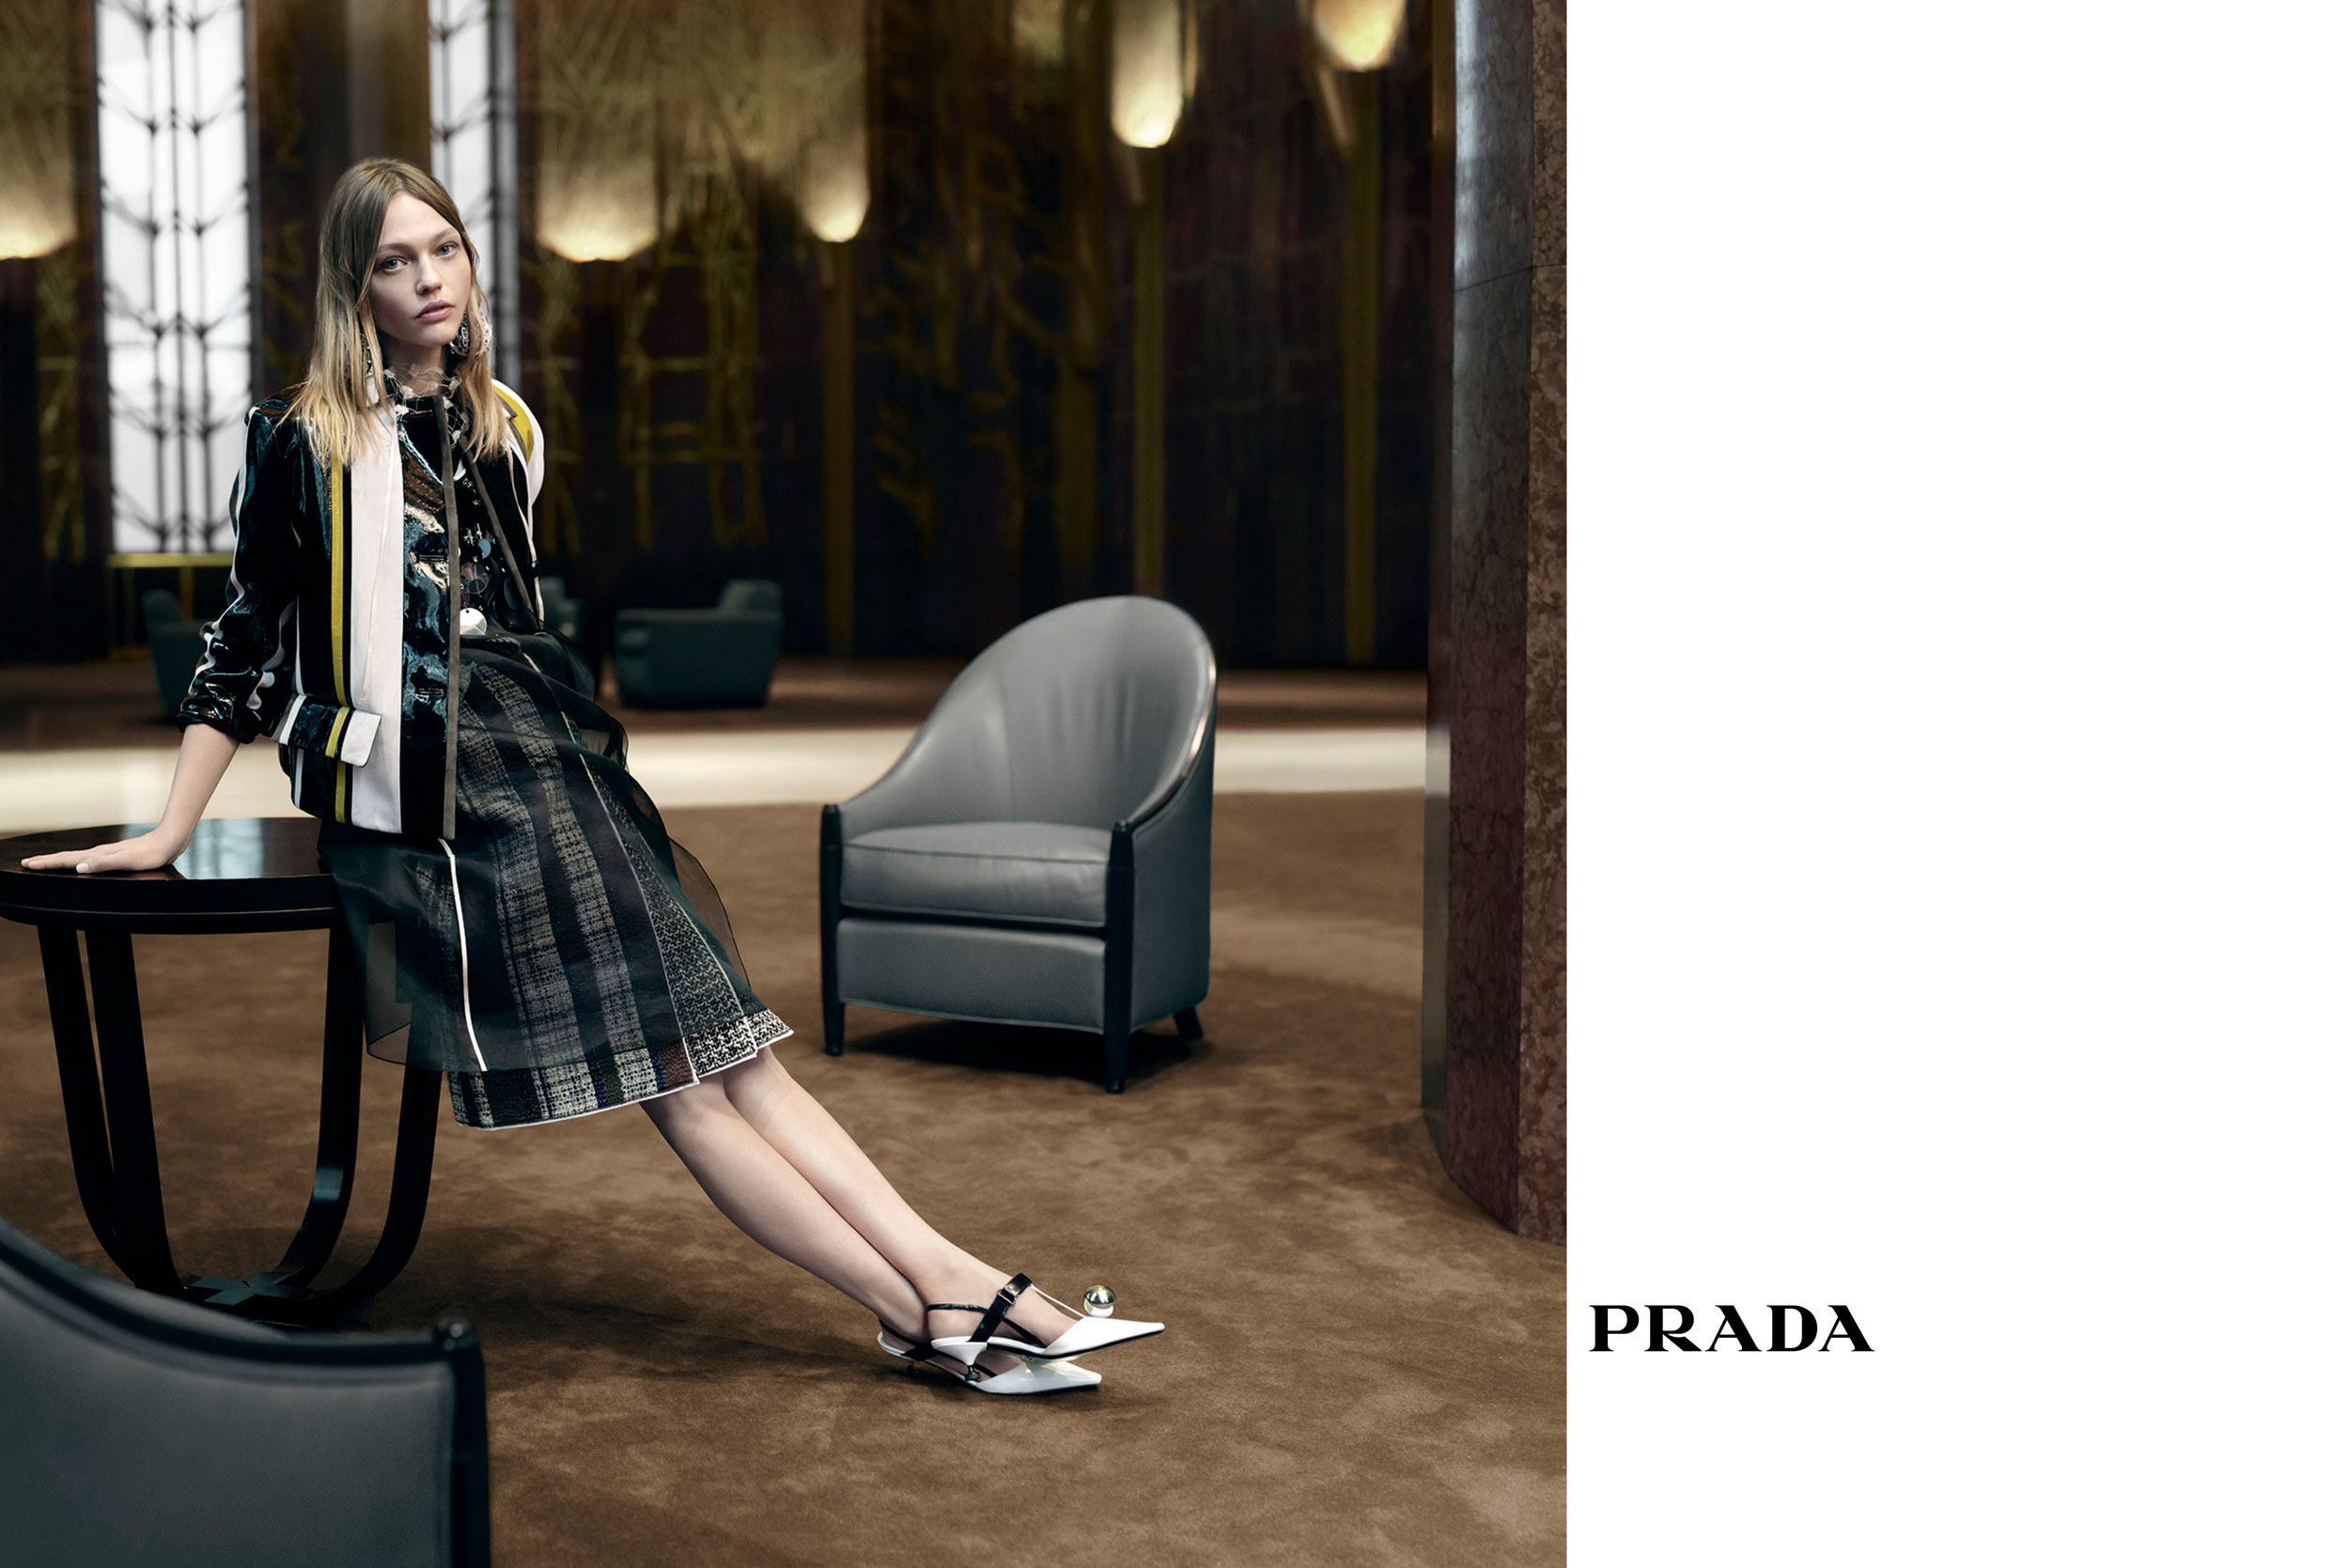 ad-campaign-fall-winter-summer-2016-prada-folkr-34